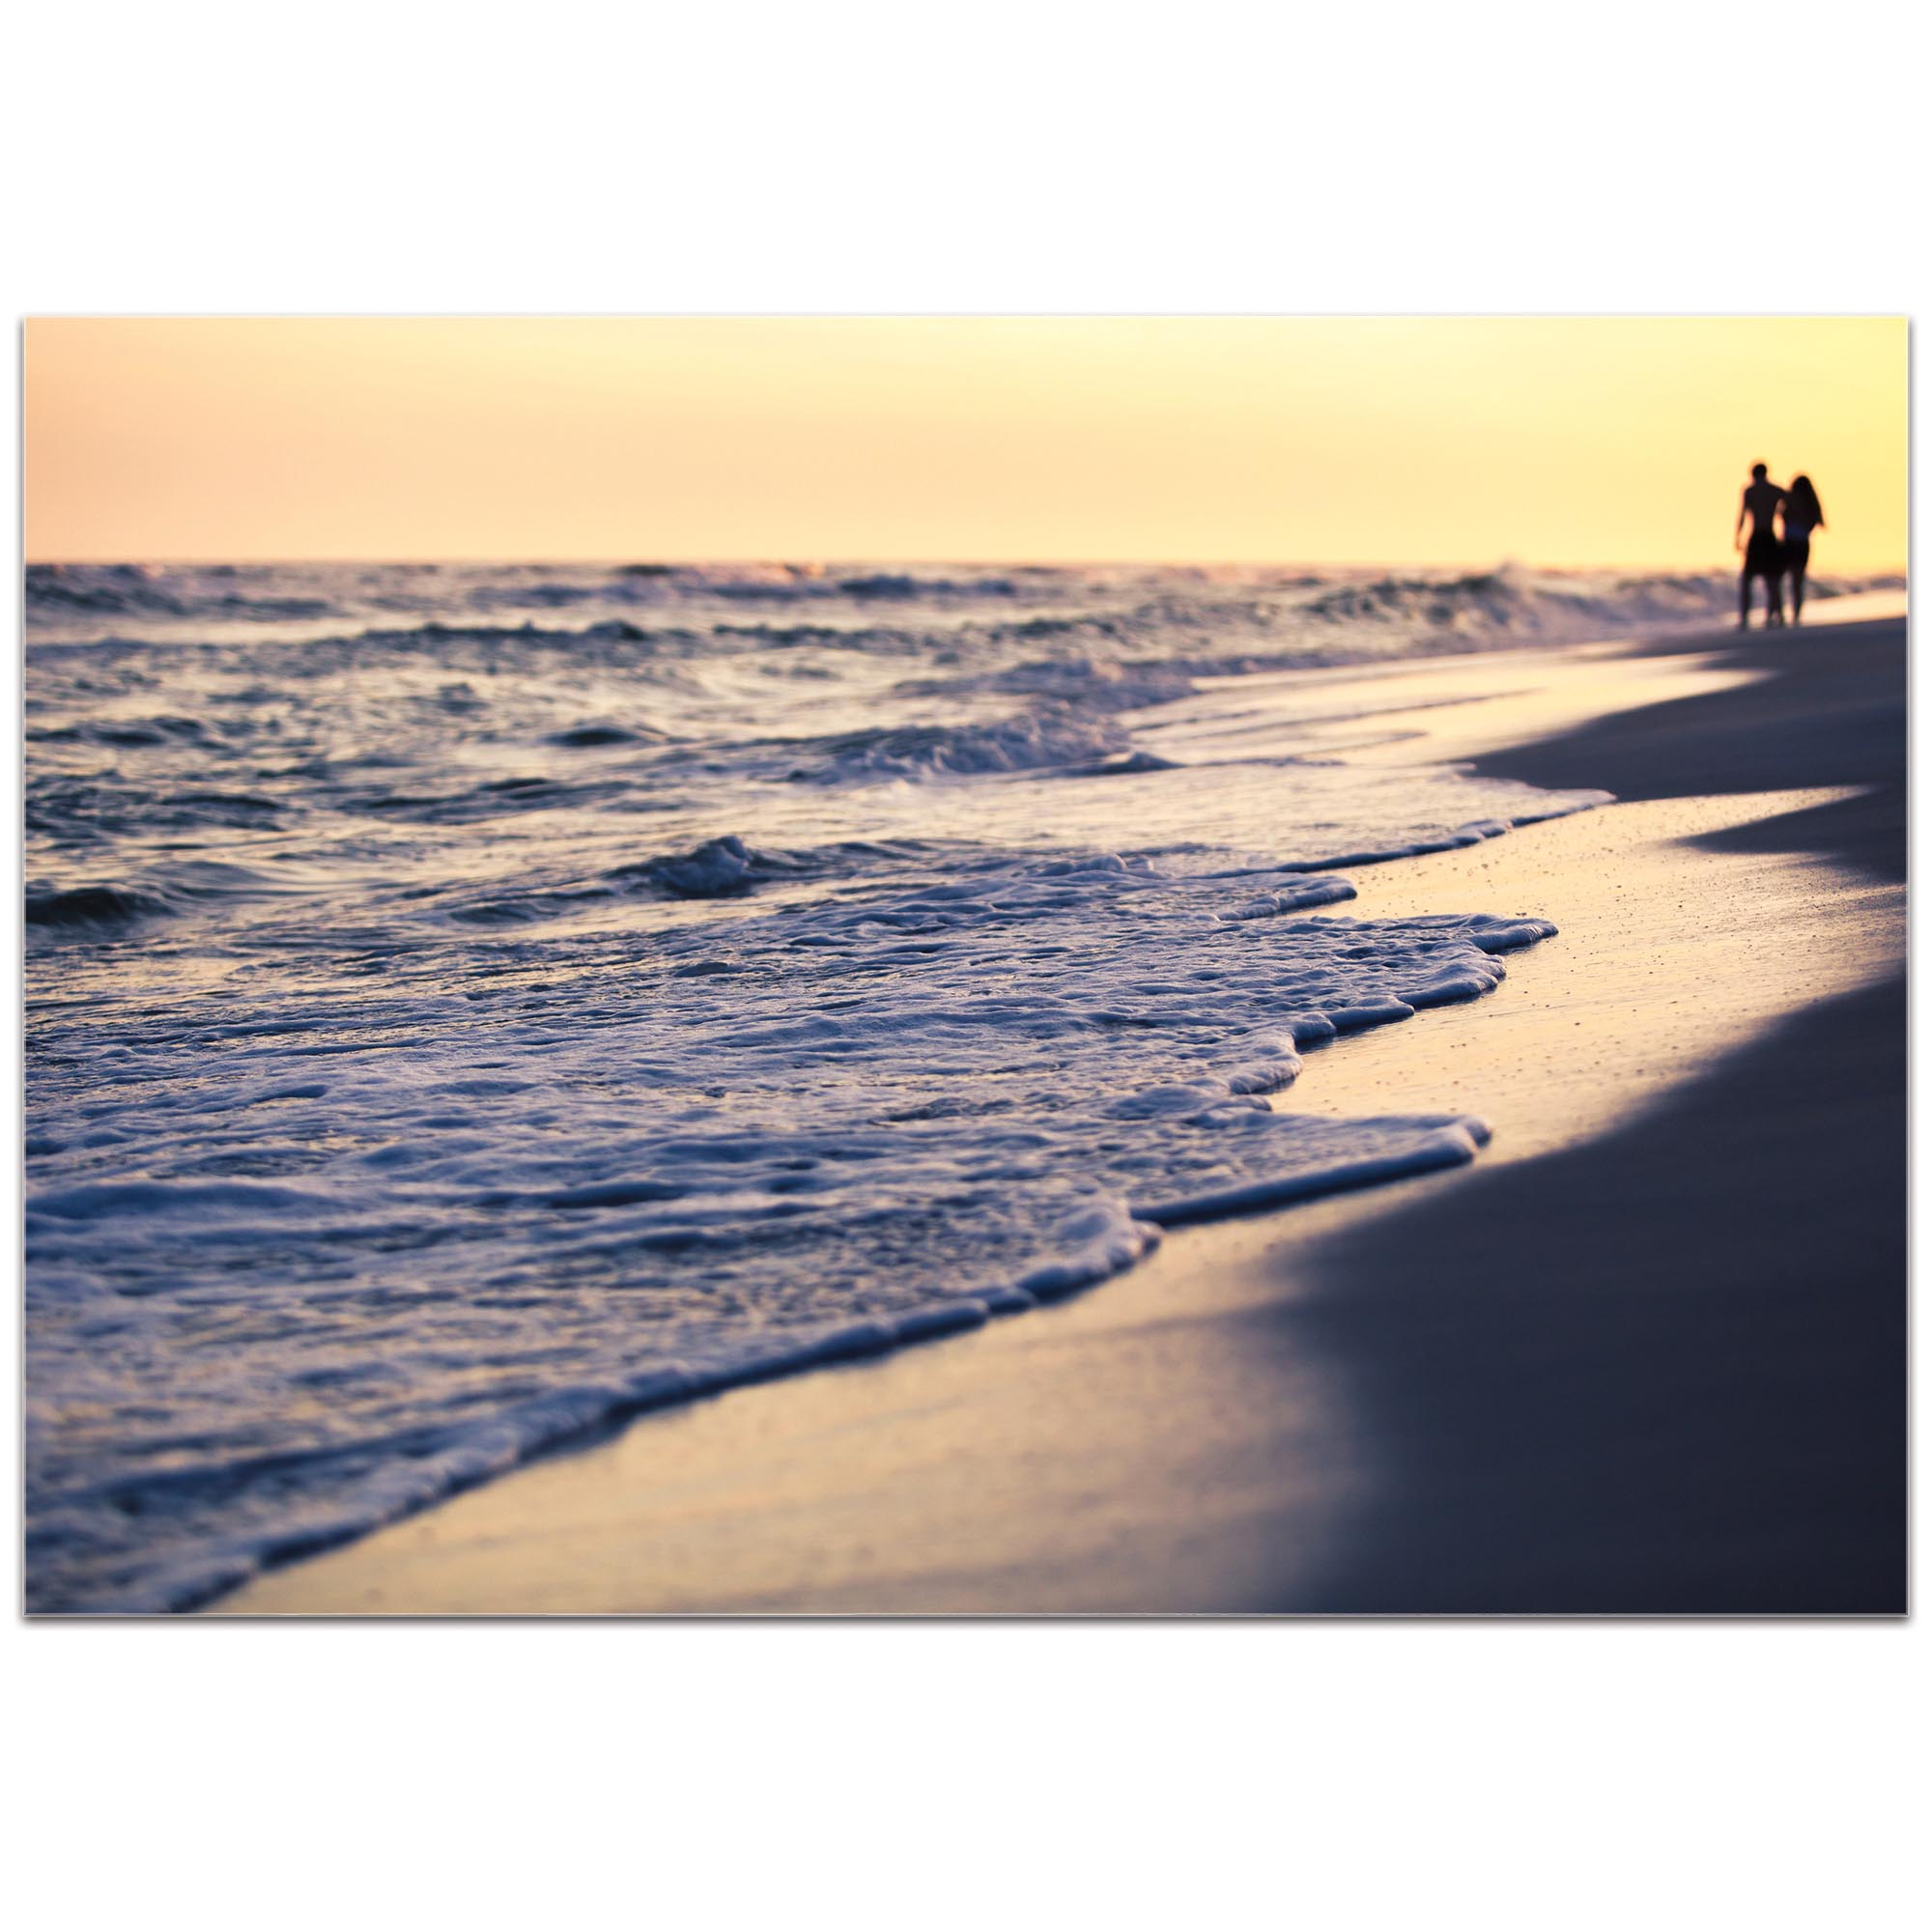 Coastal Wall Art 'Beach Stroll' - Beach Sunset Decor on Metal or Plexiglass - Image 2